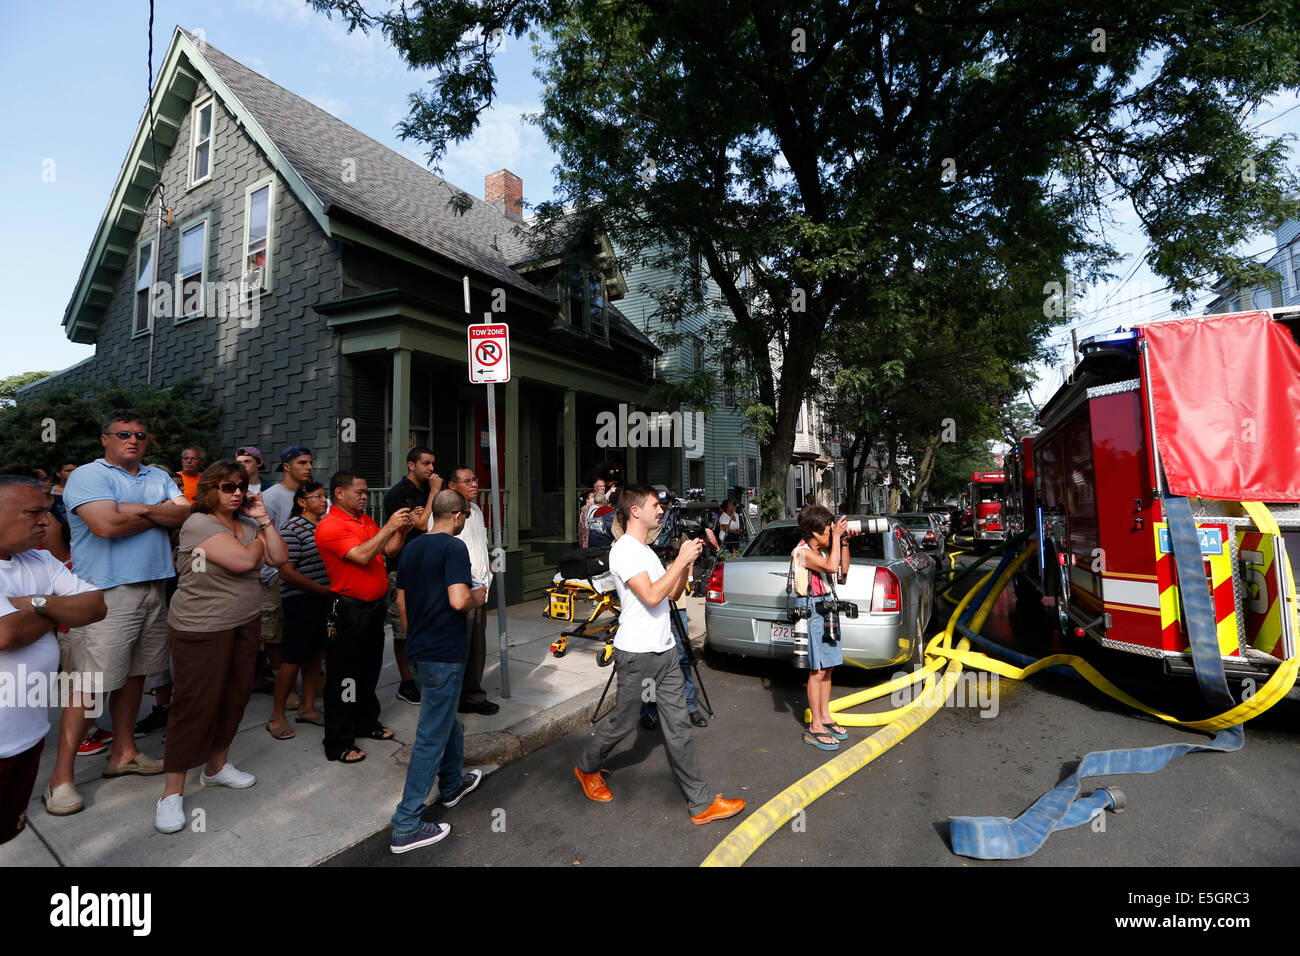 People gather to watch firefighters responding to a 6-alarm house fire in Boston, Massachusetts USA - Stock Image